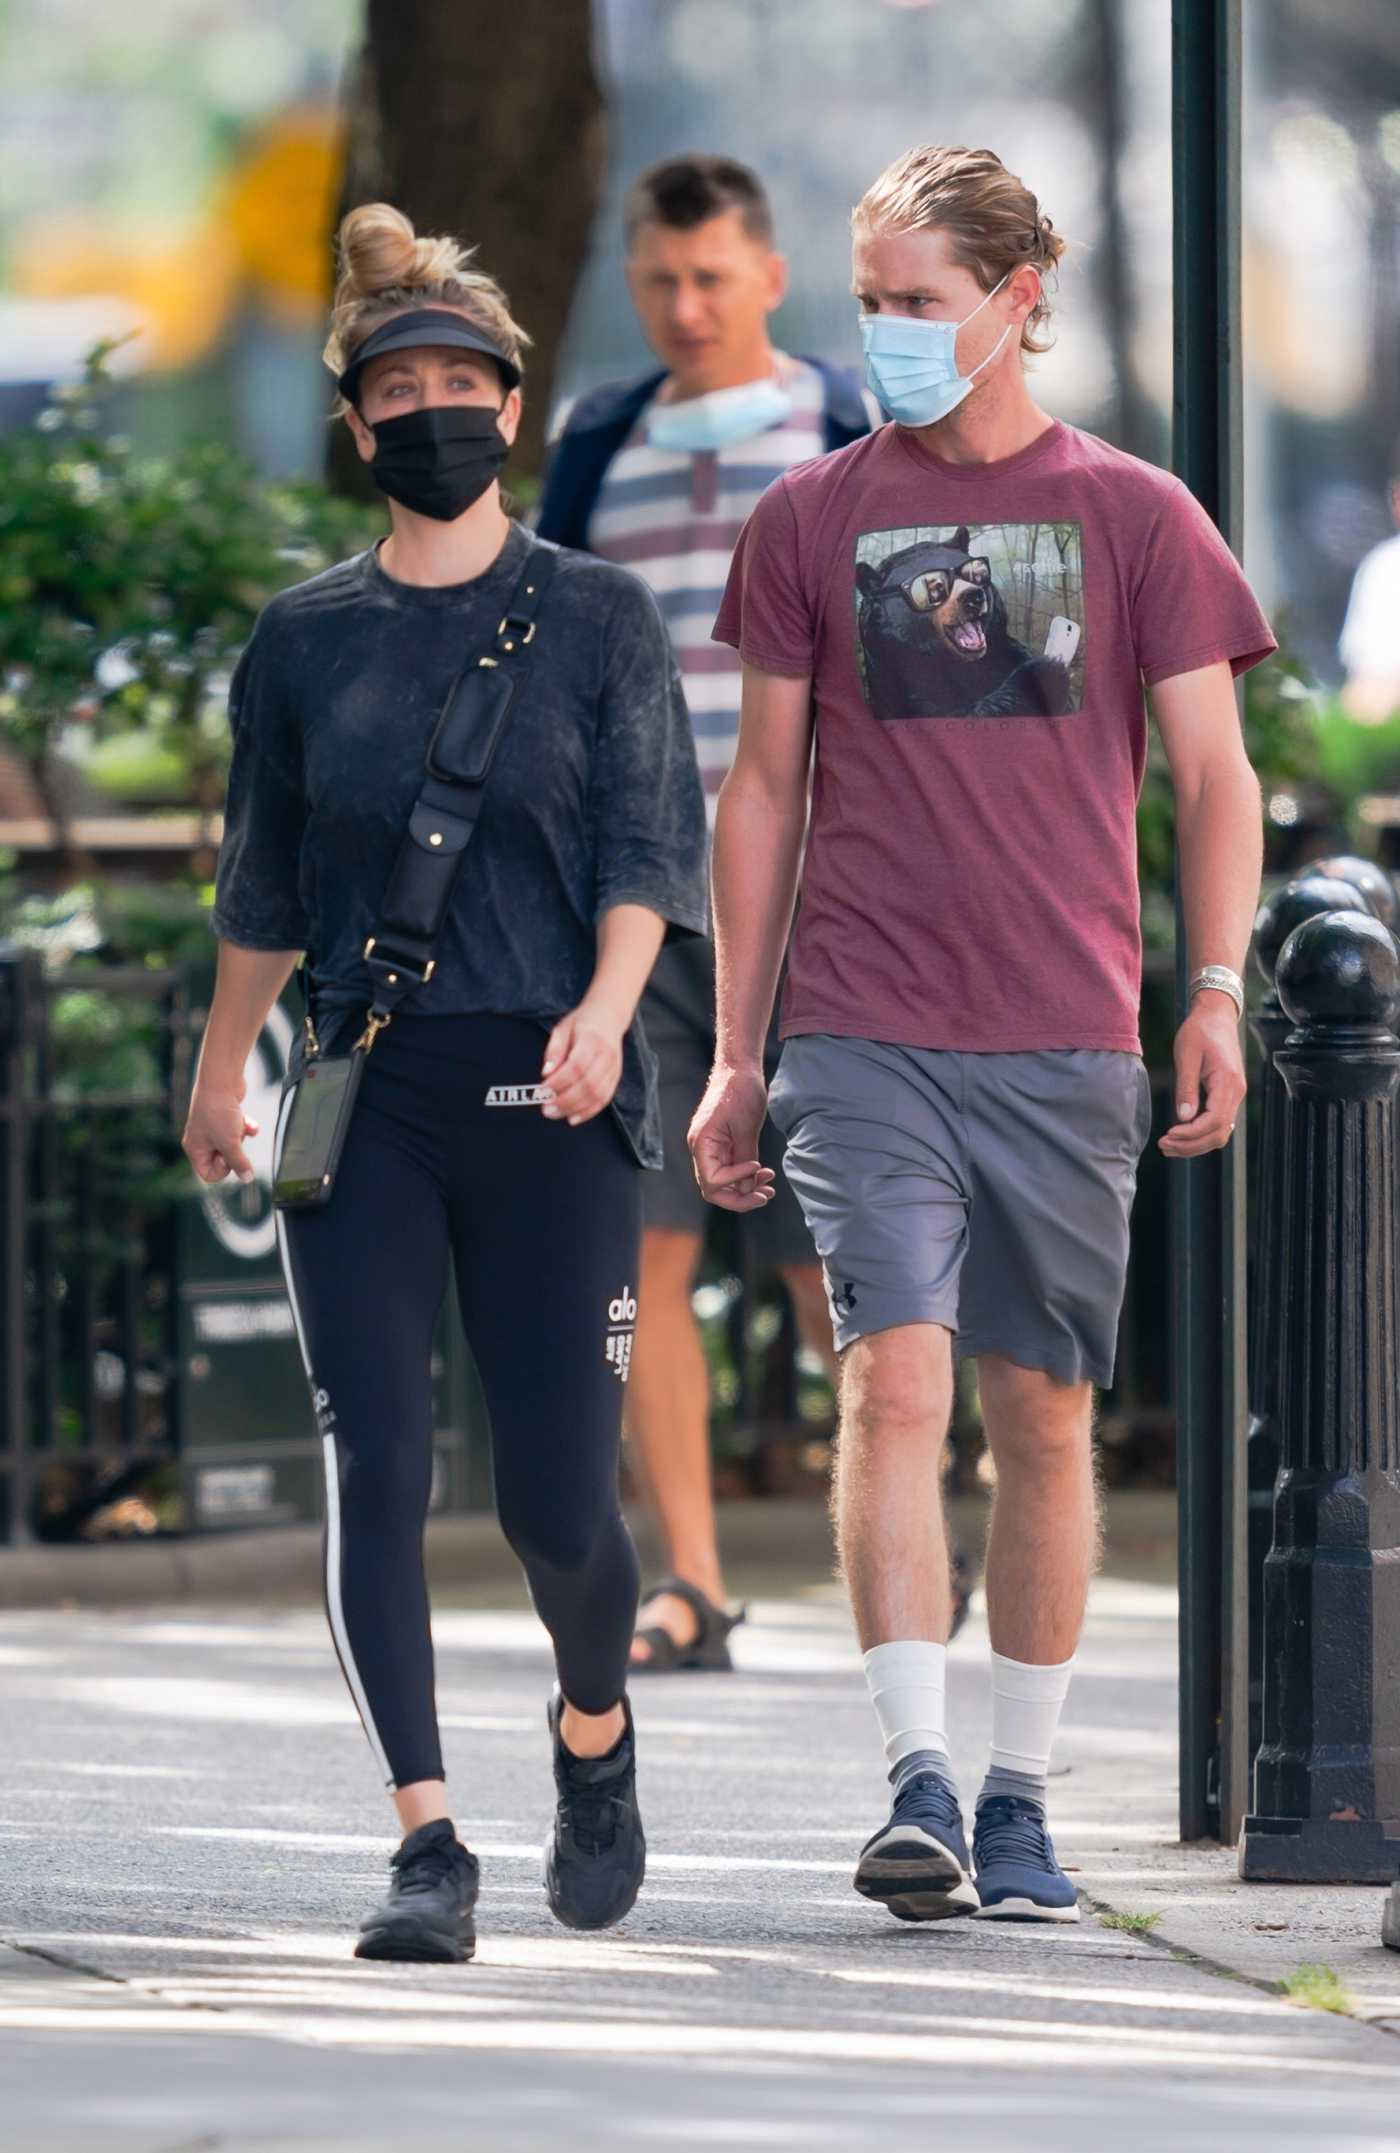 Kaley Cuoco in a Black Leggings Was Spotted Out with Karl Cook in New York 09/12/2020